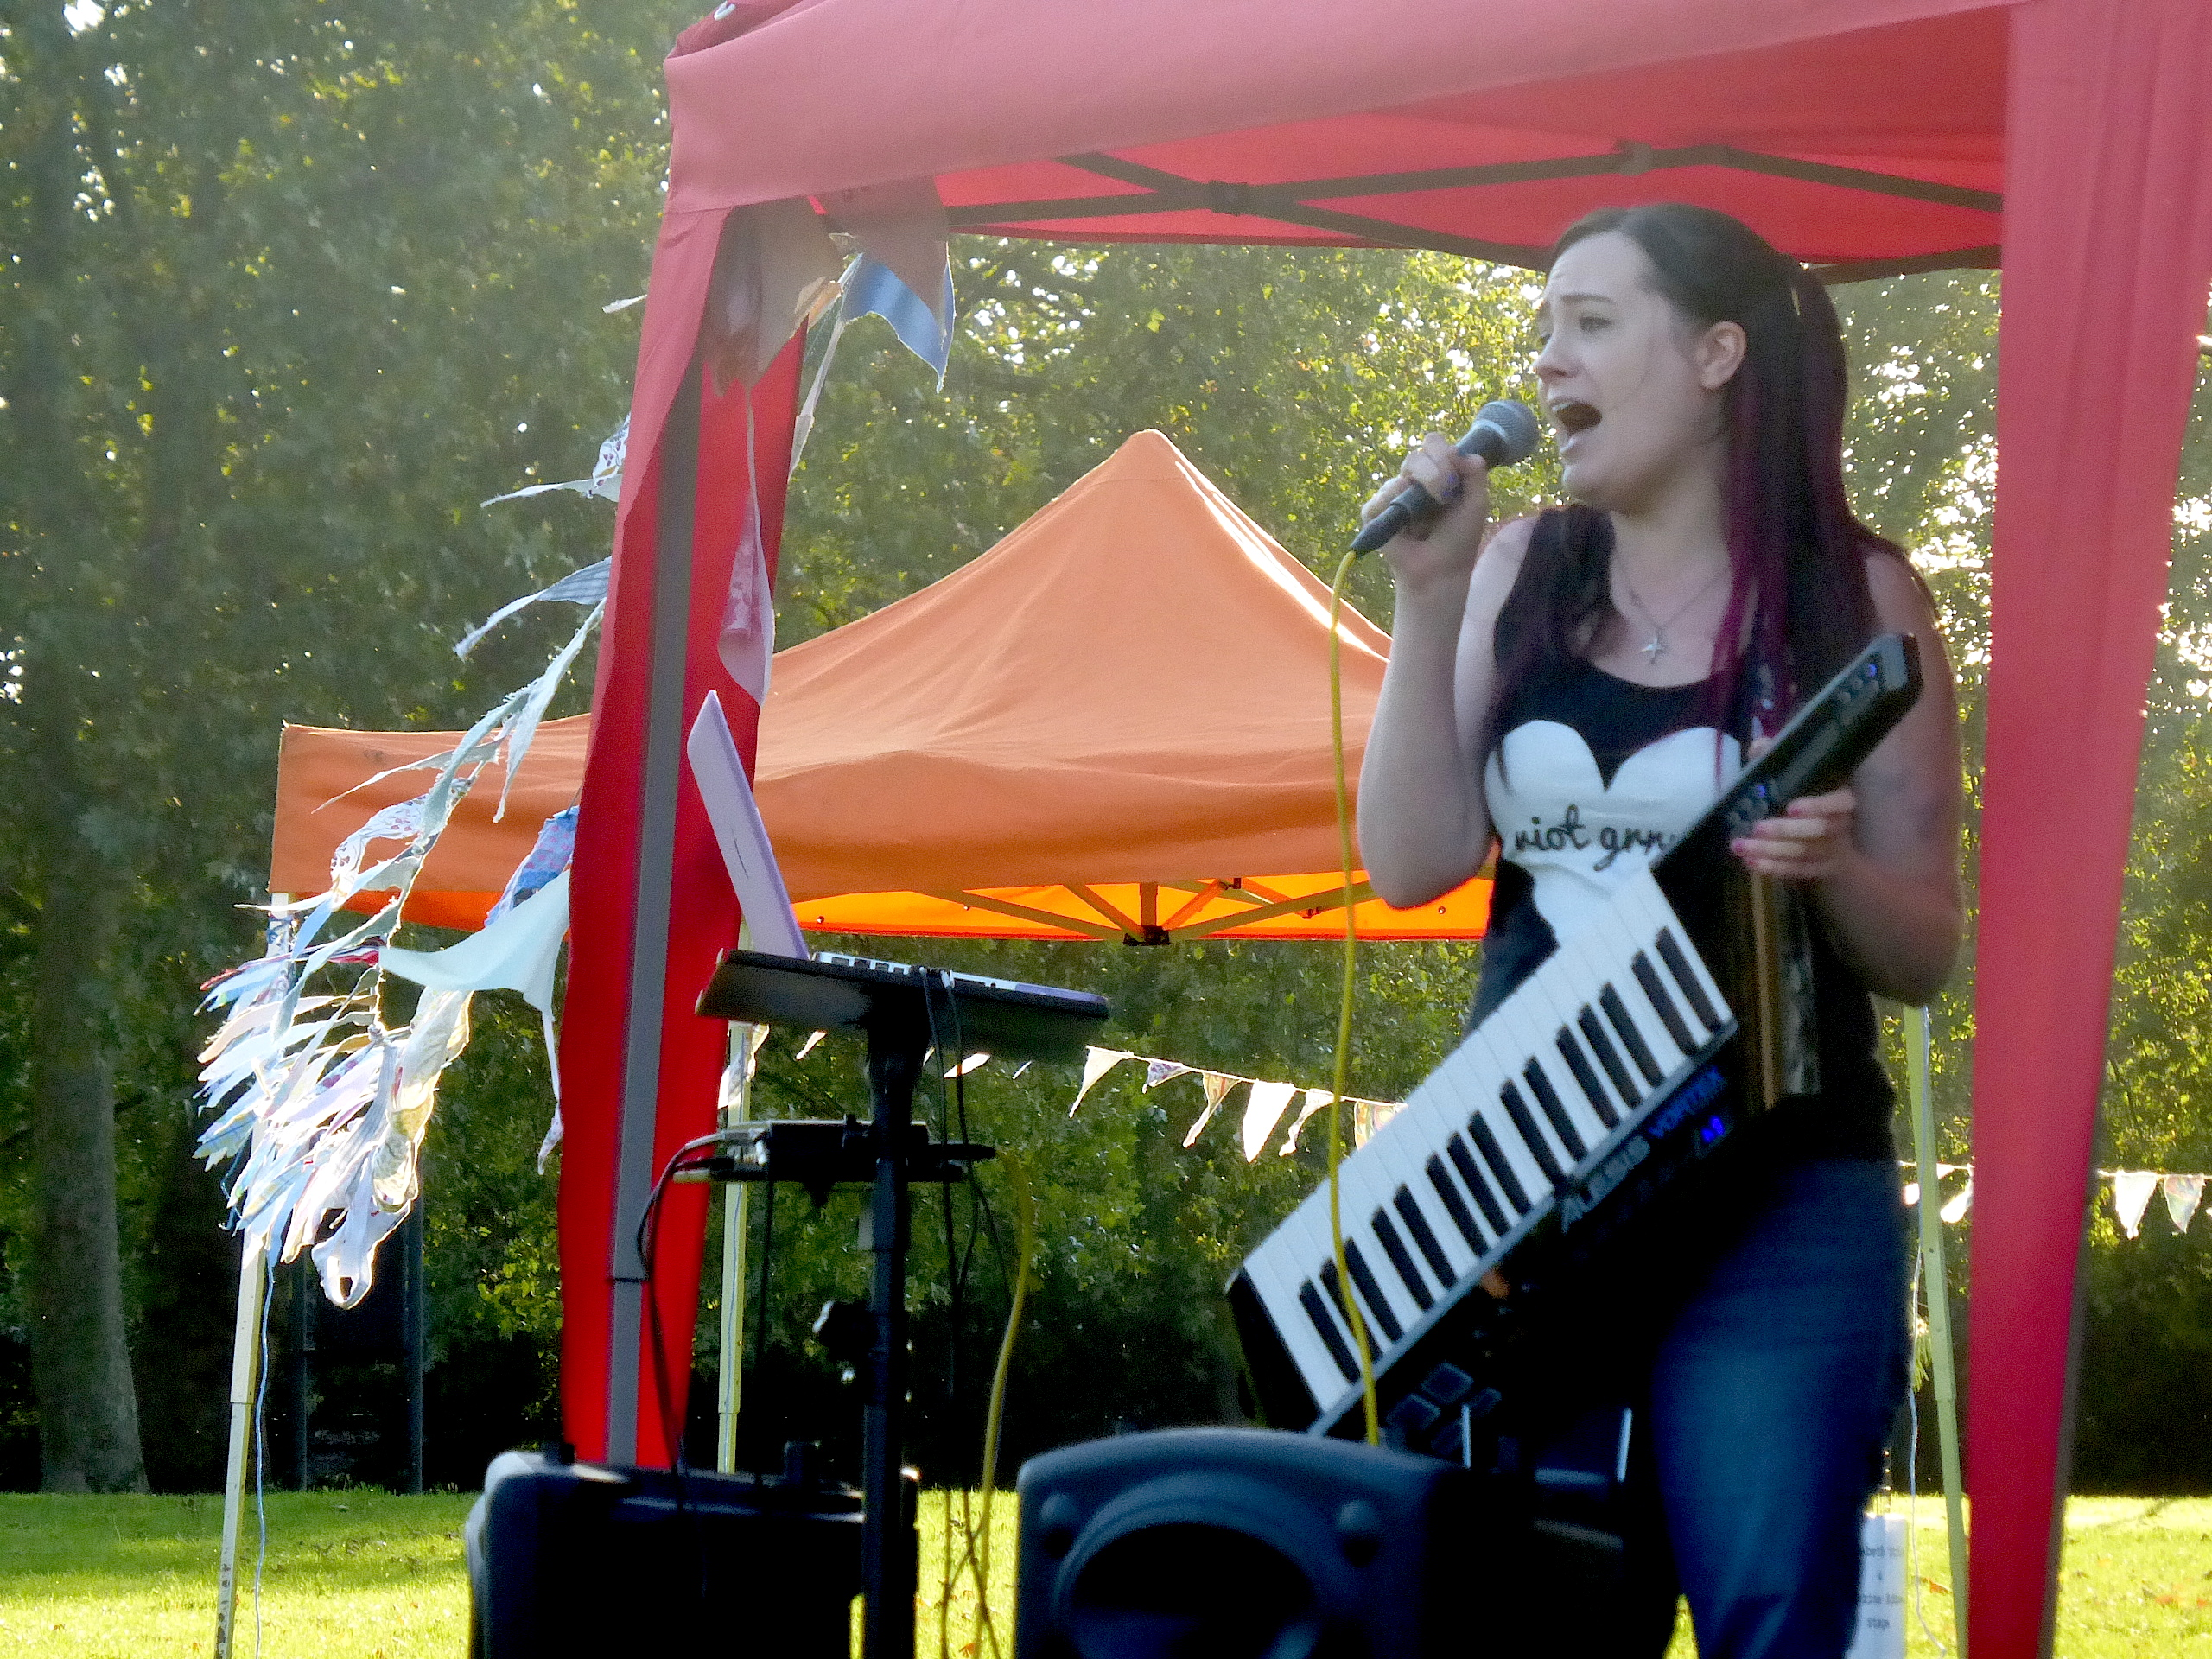 Feminist Solidarity Fest @ Hackney Downs, London, September 2015 - Photo by Leanne Waring